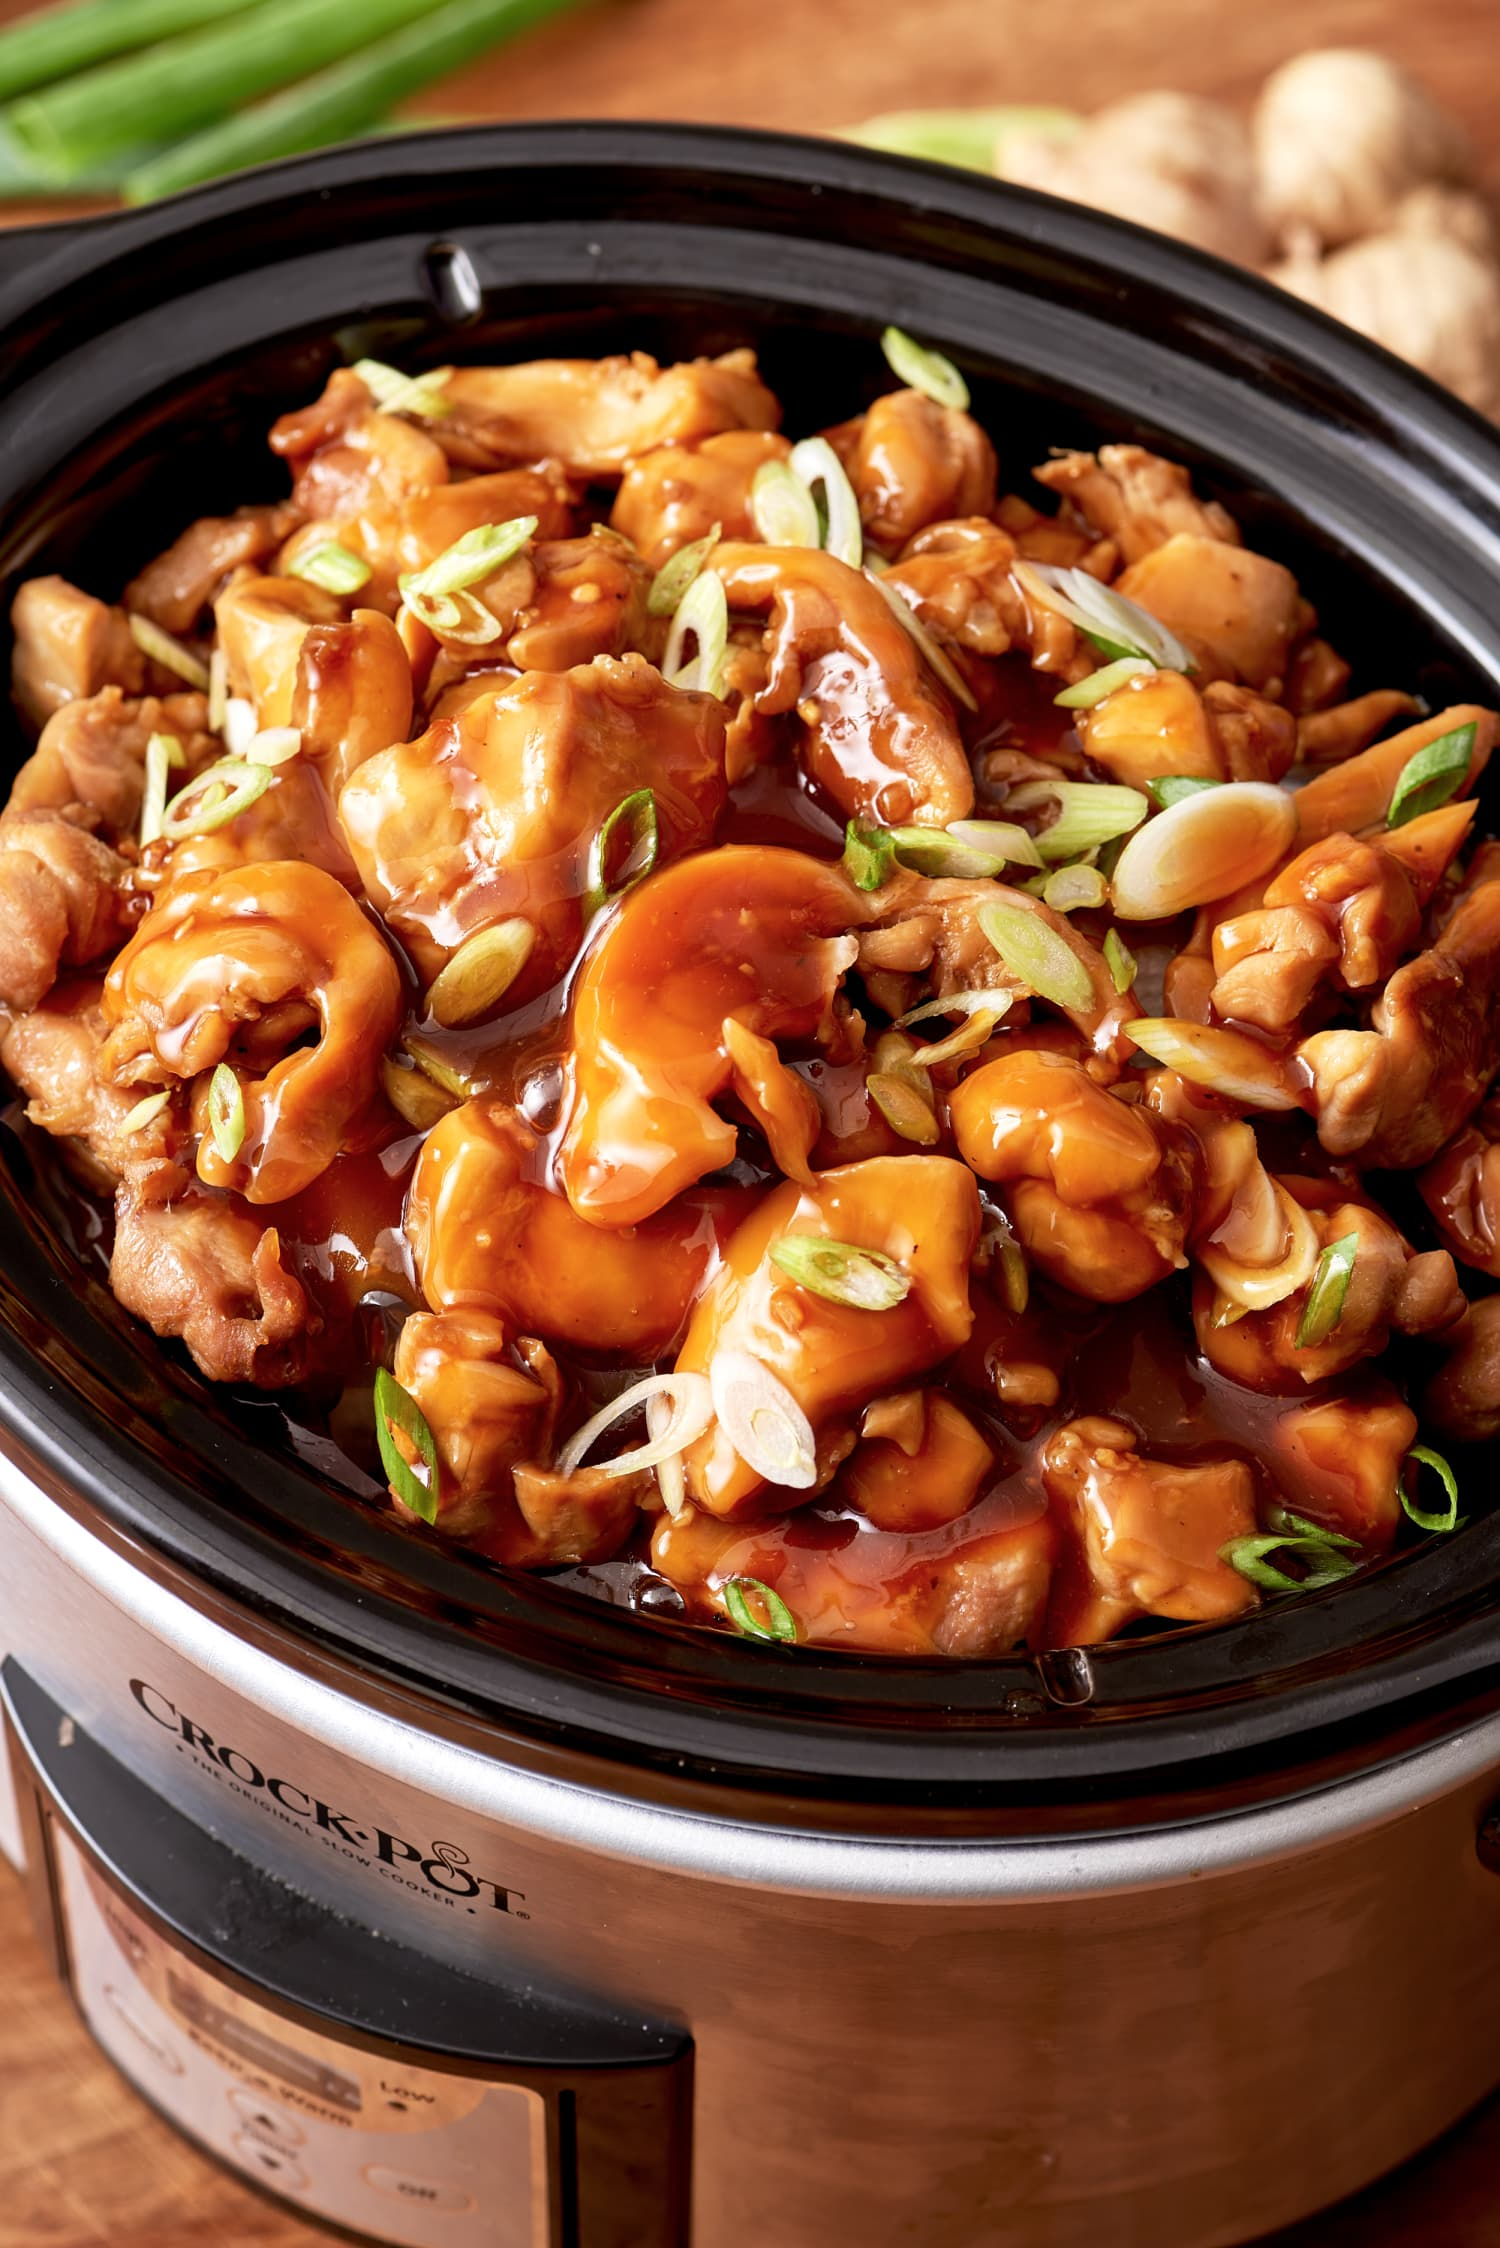 Our Most Popular Slow Cooker Chicken Recipes of 2017